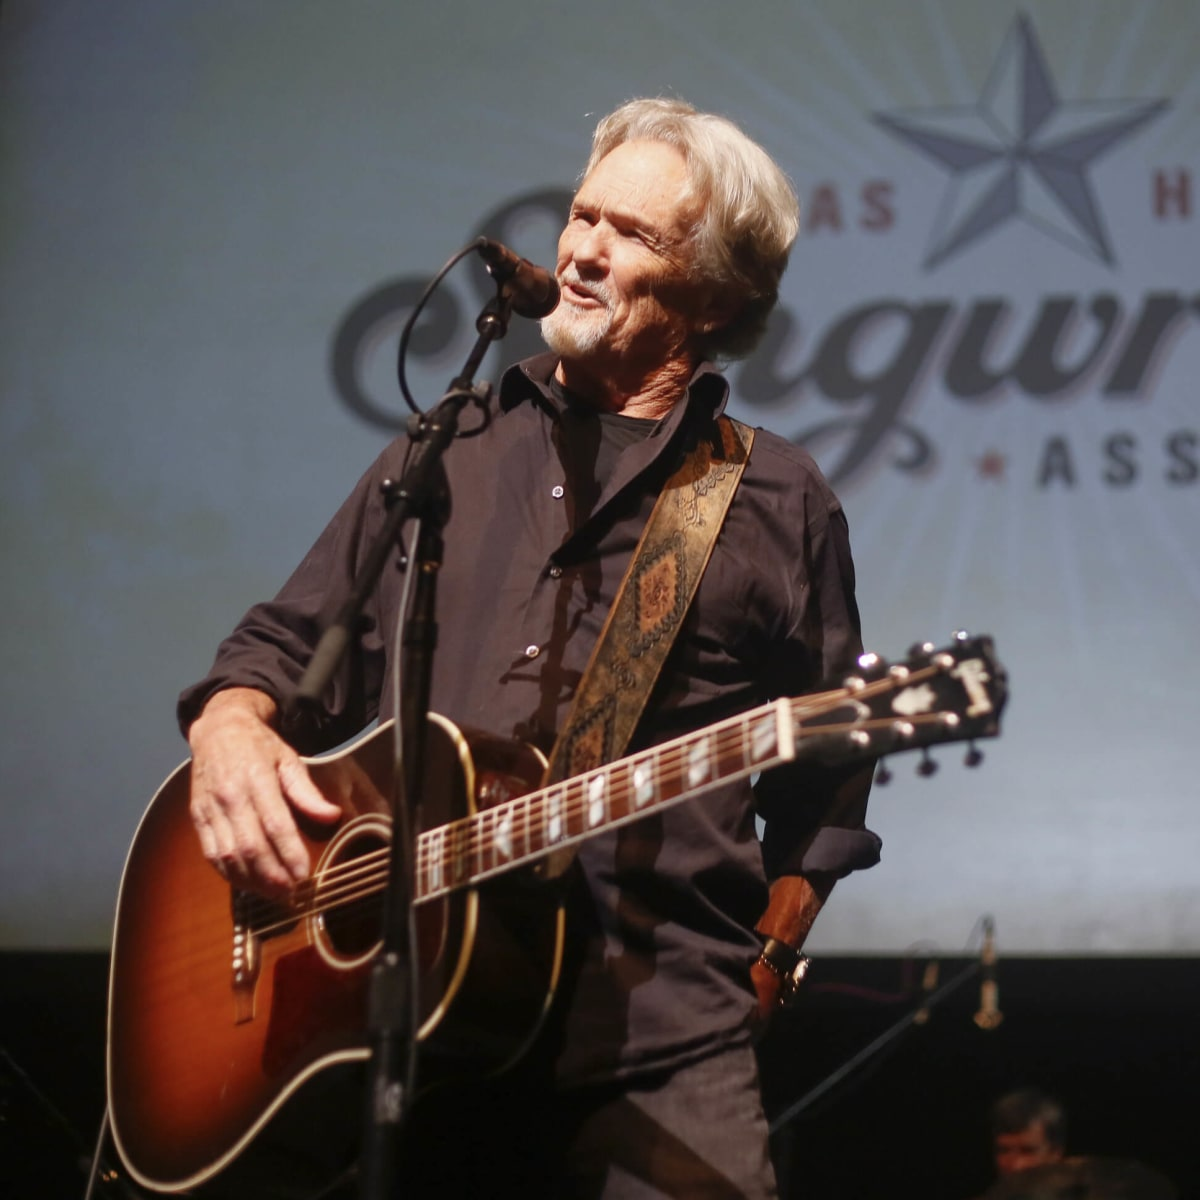 Kris Kristofferson Texas Songwriters Hall of Fame